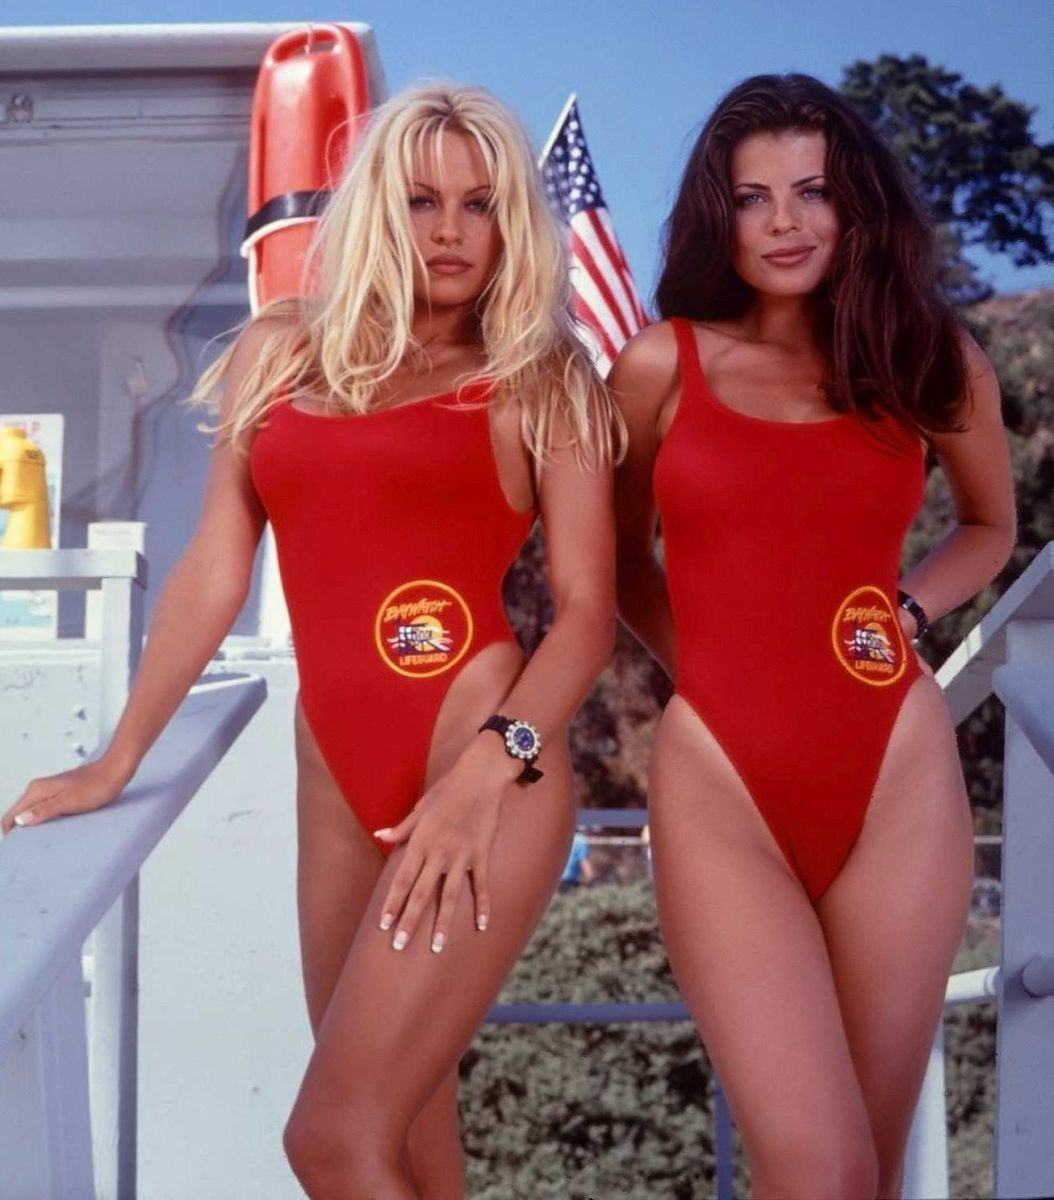 Pamela Anderson and Yasmine Bleeth from Baywatch (1989)